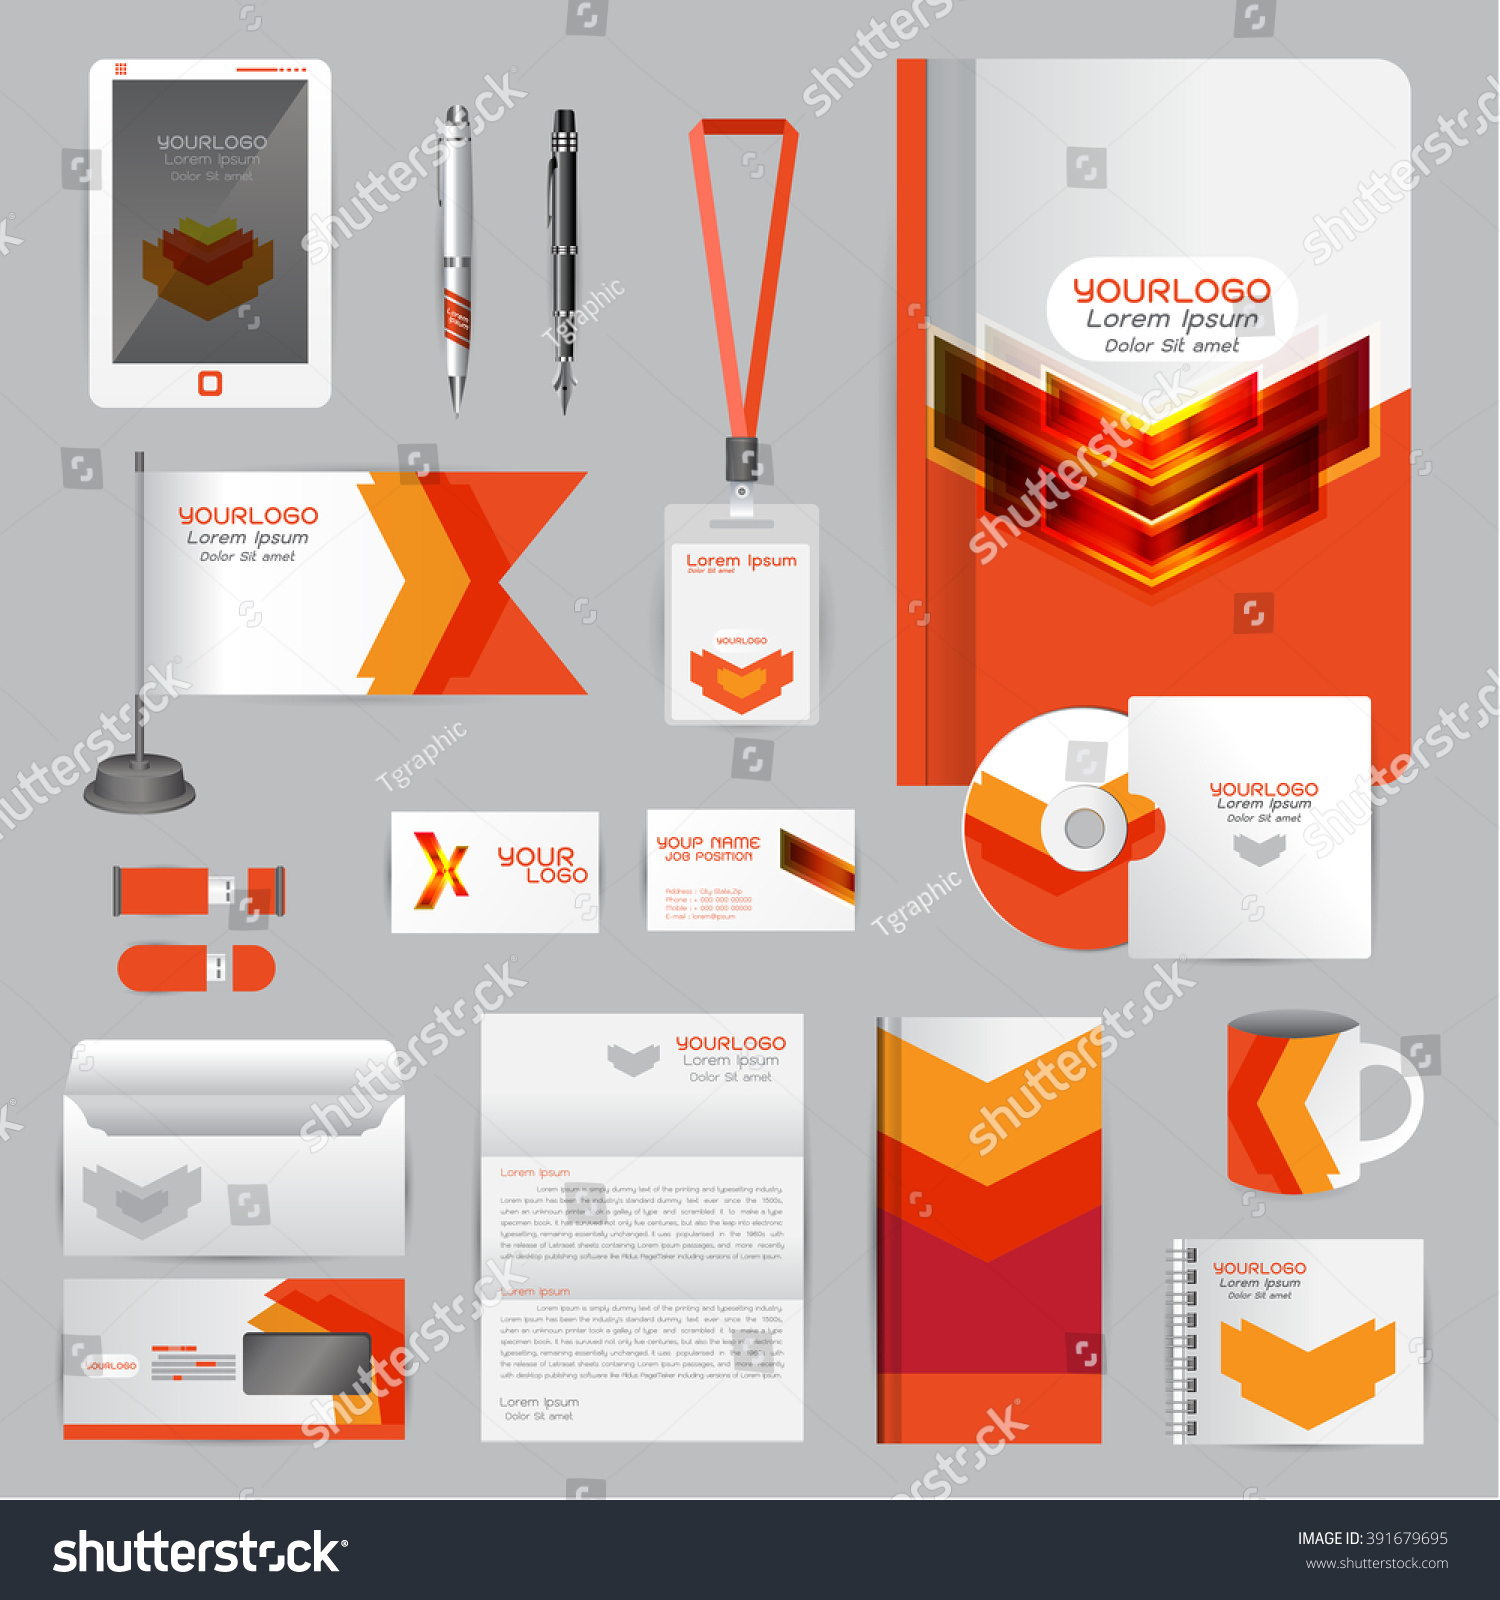 Great 1 Page Brochure Template Tiny 1 Year Experience Resume Format For Java Solid 1 Year Experience Resume Format For Software Developer 10 Steps To Creating A Resume Young 10 Tips To Making A Resume Soft1099 Form Template White Identity Template Orange Origami Elements Stock Vector ..